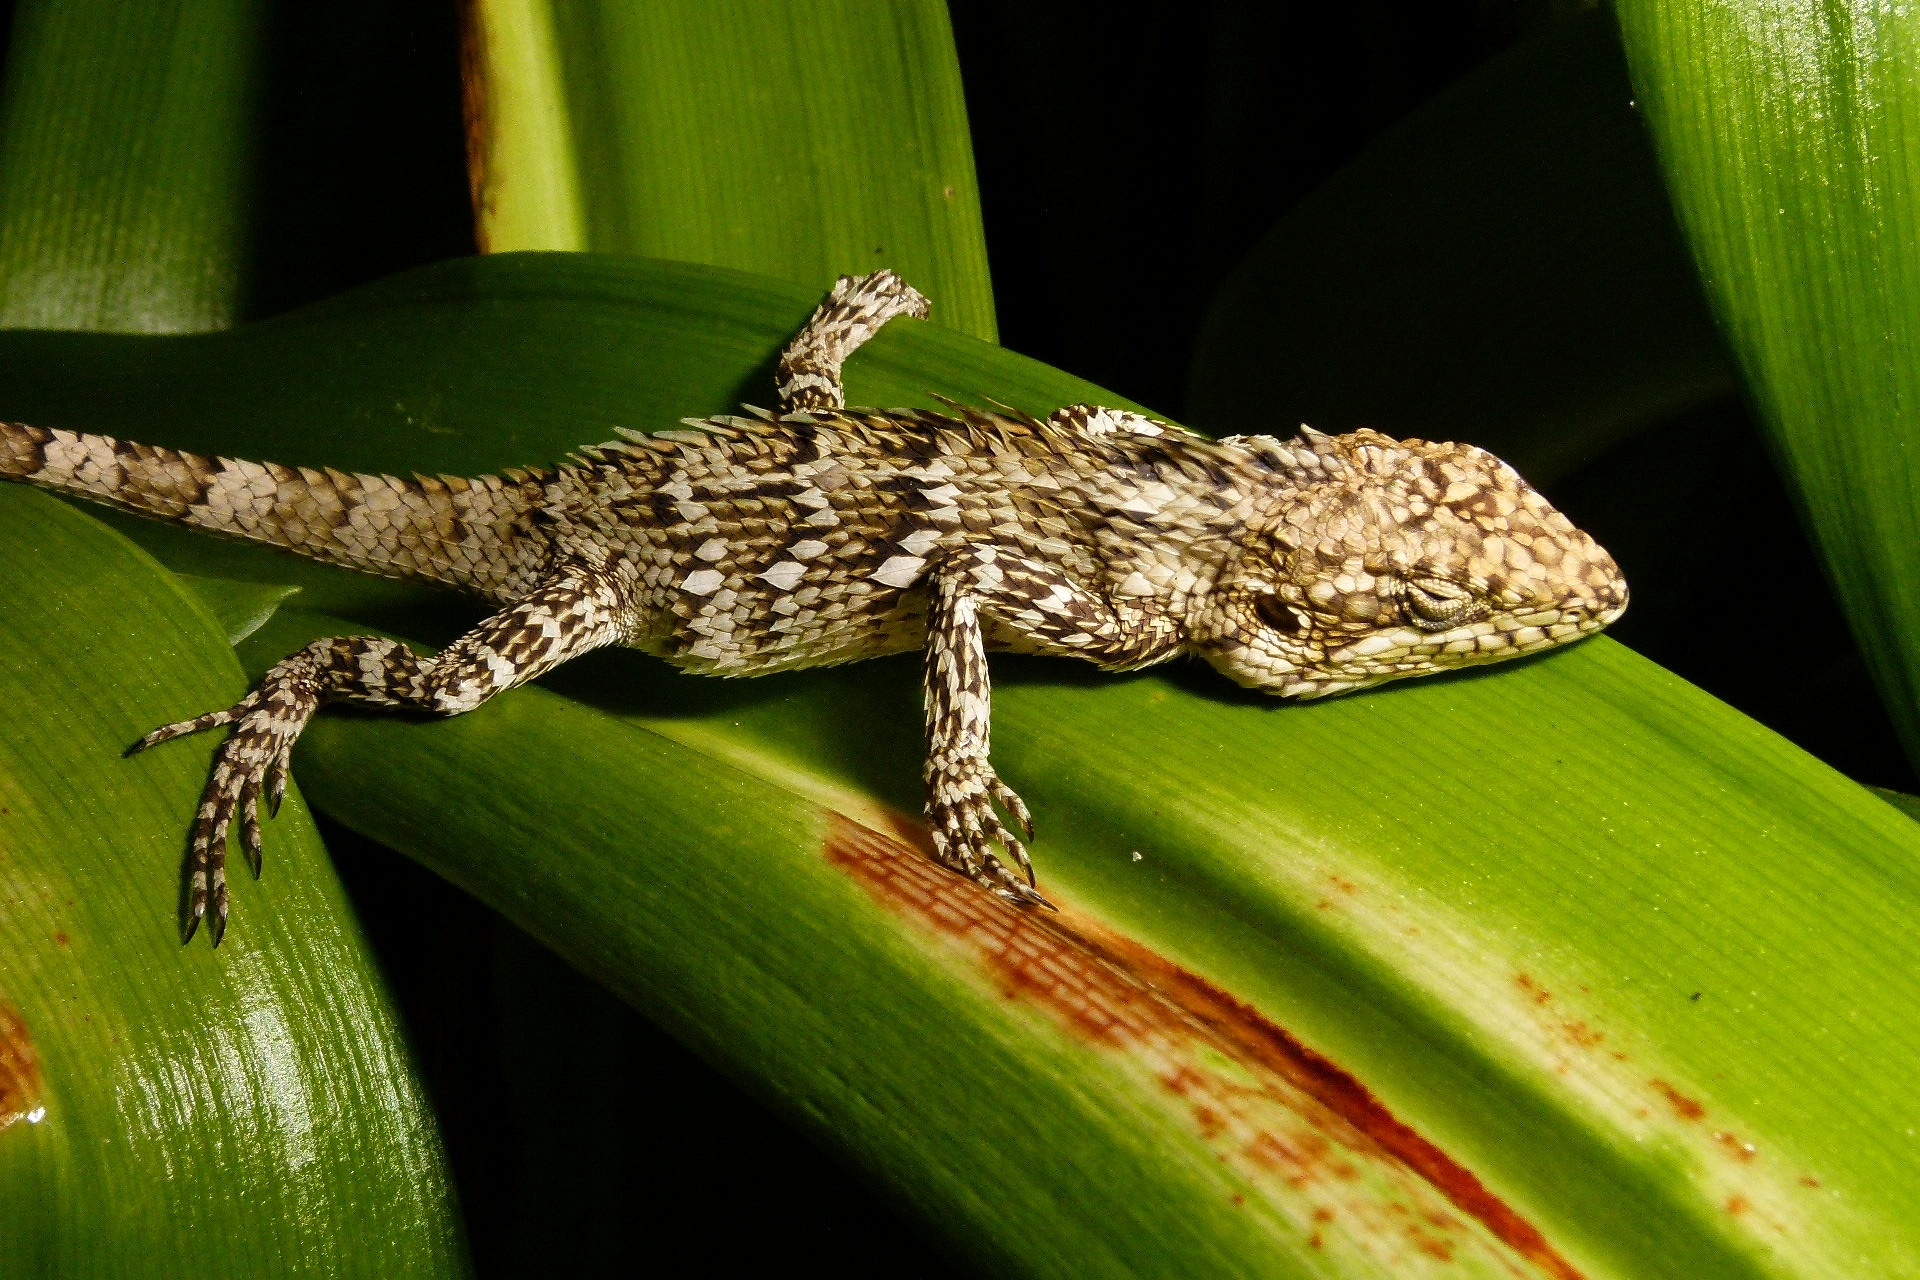 Image of Horsfield's Spiny Lizard